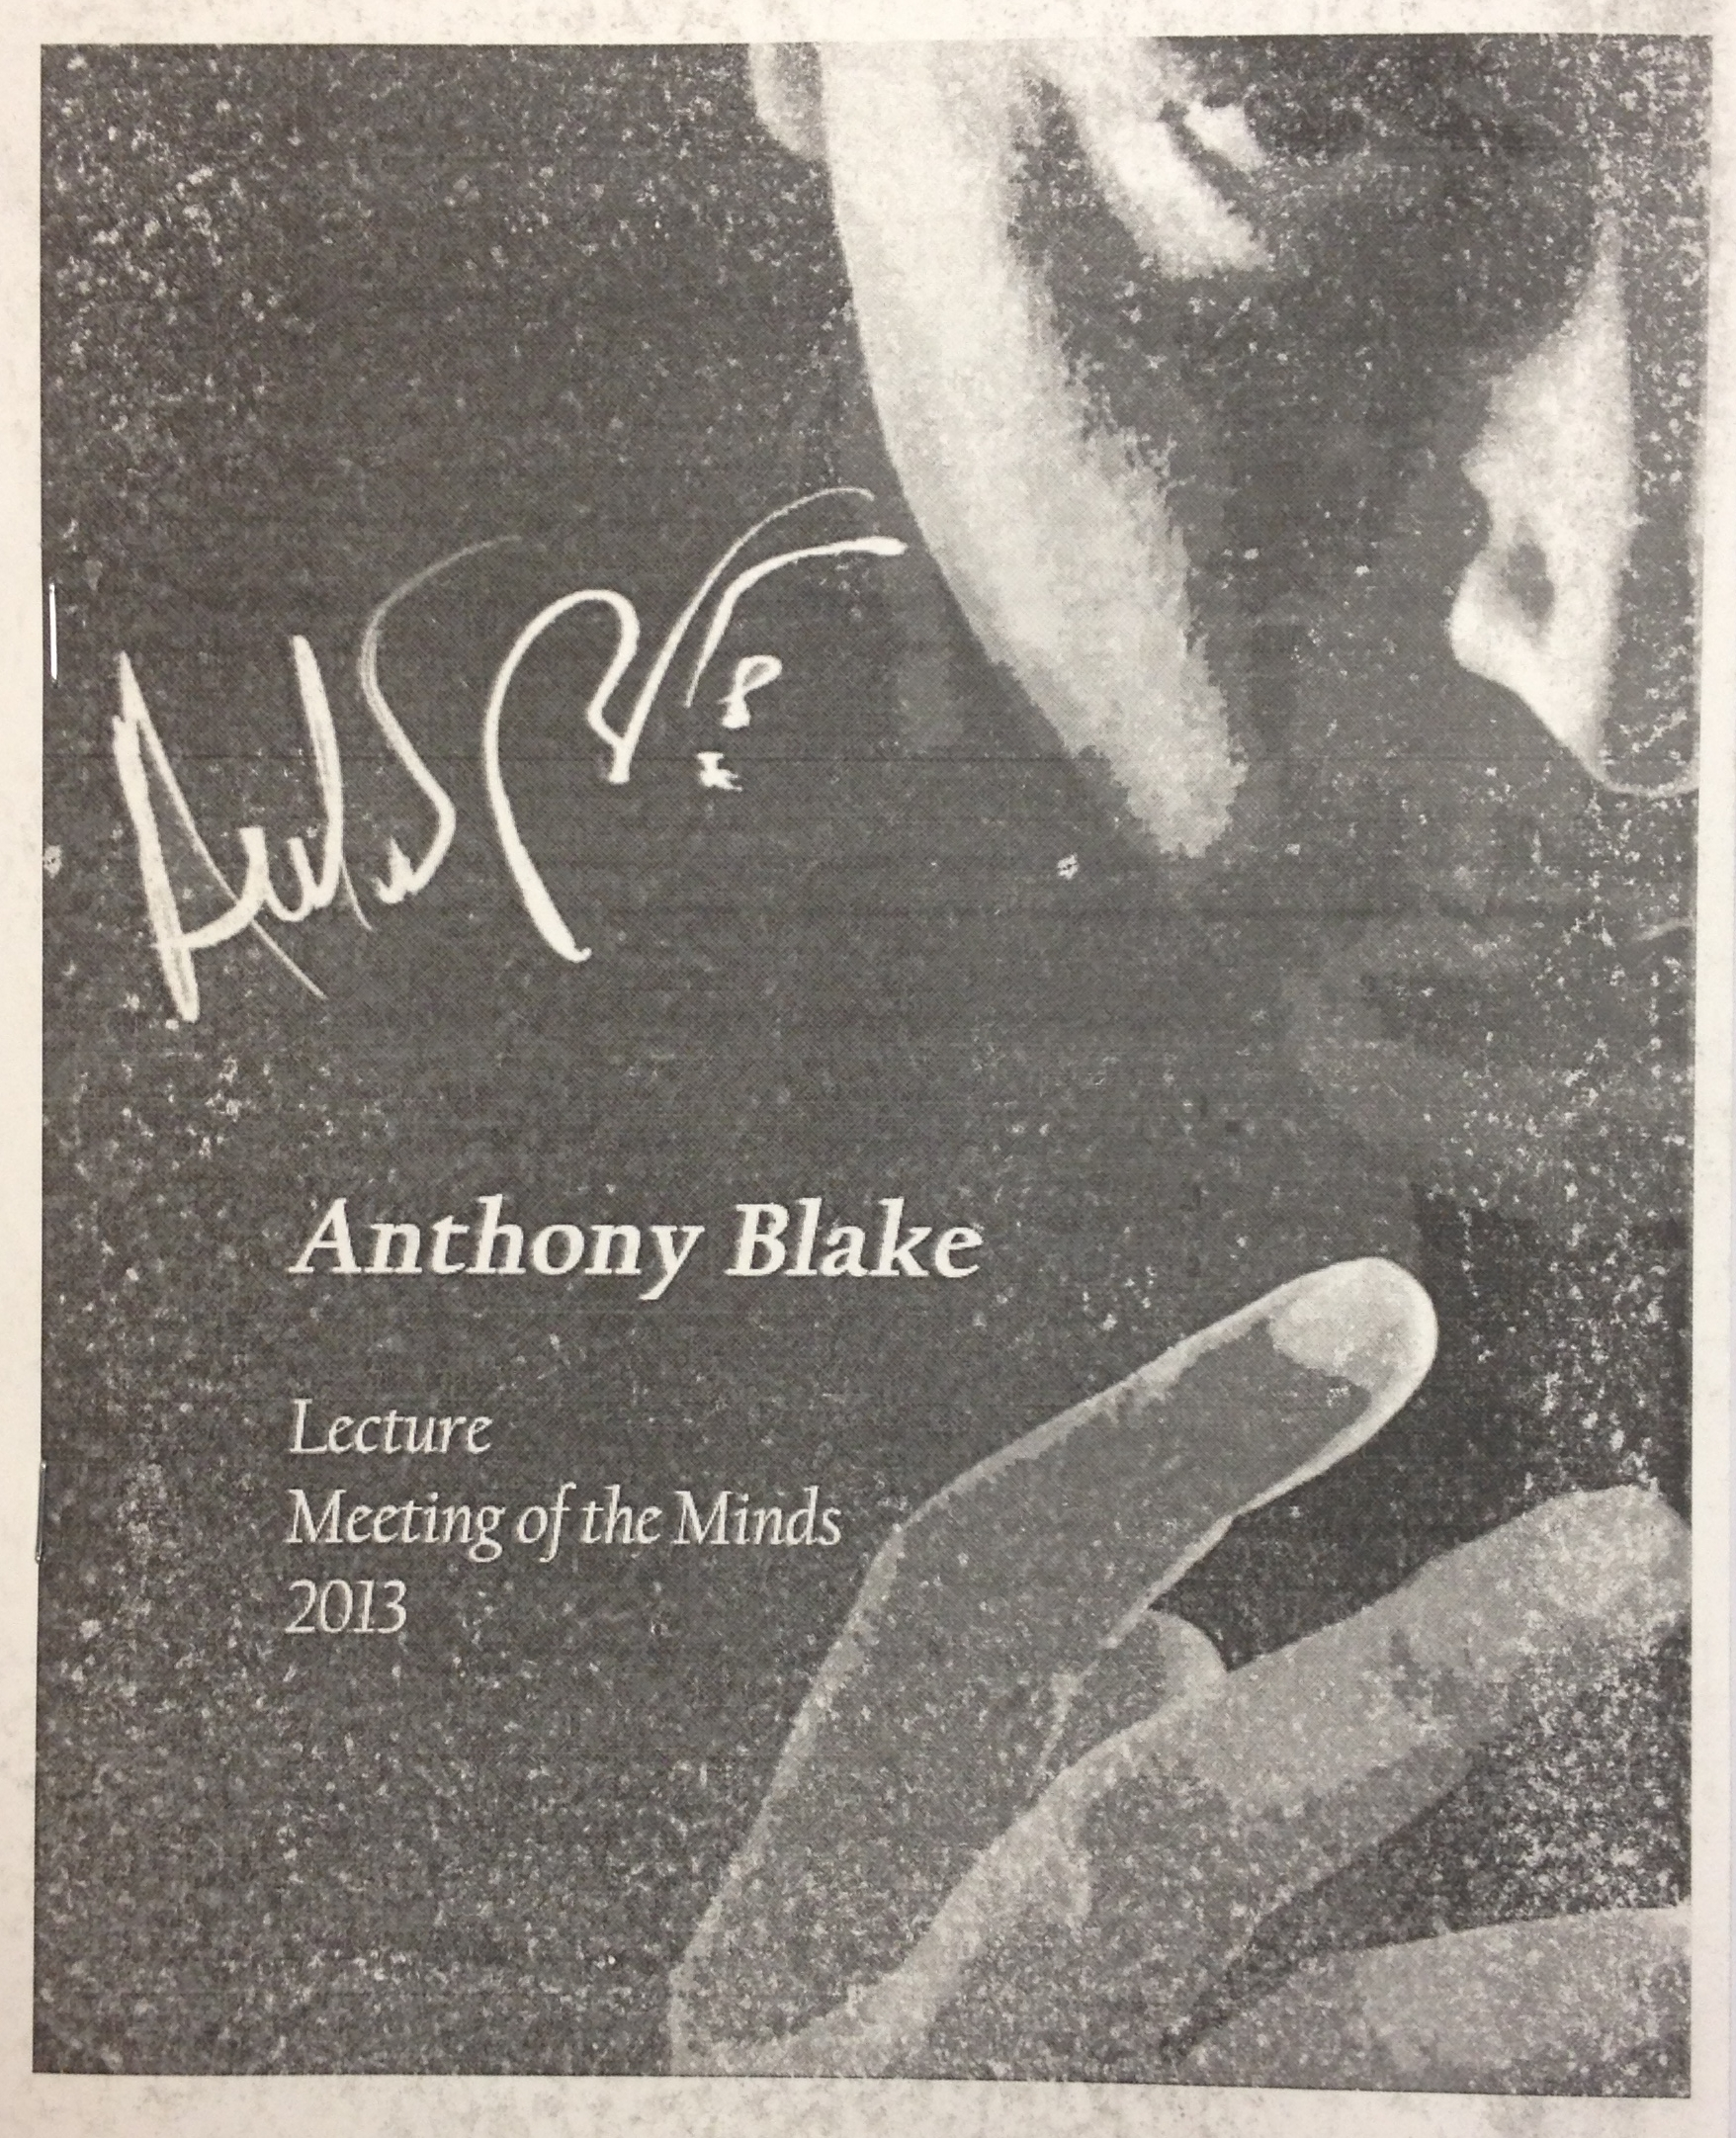 ANTHONY BLAKE LECTURE--MEETING OF THE MINDS